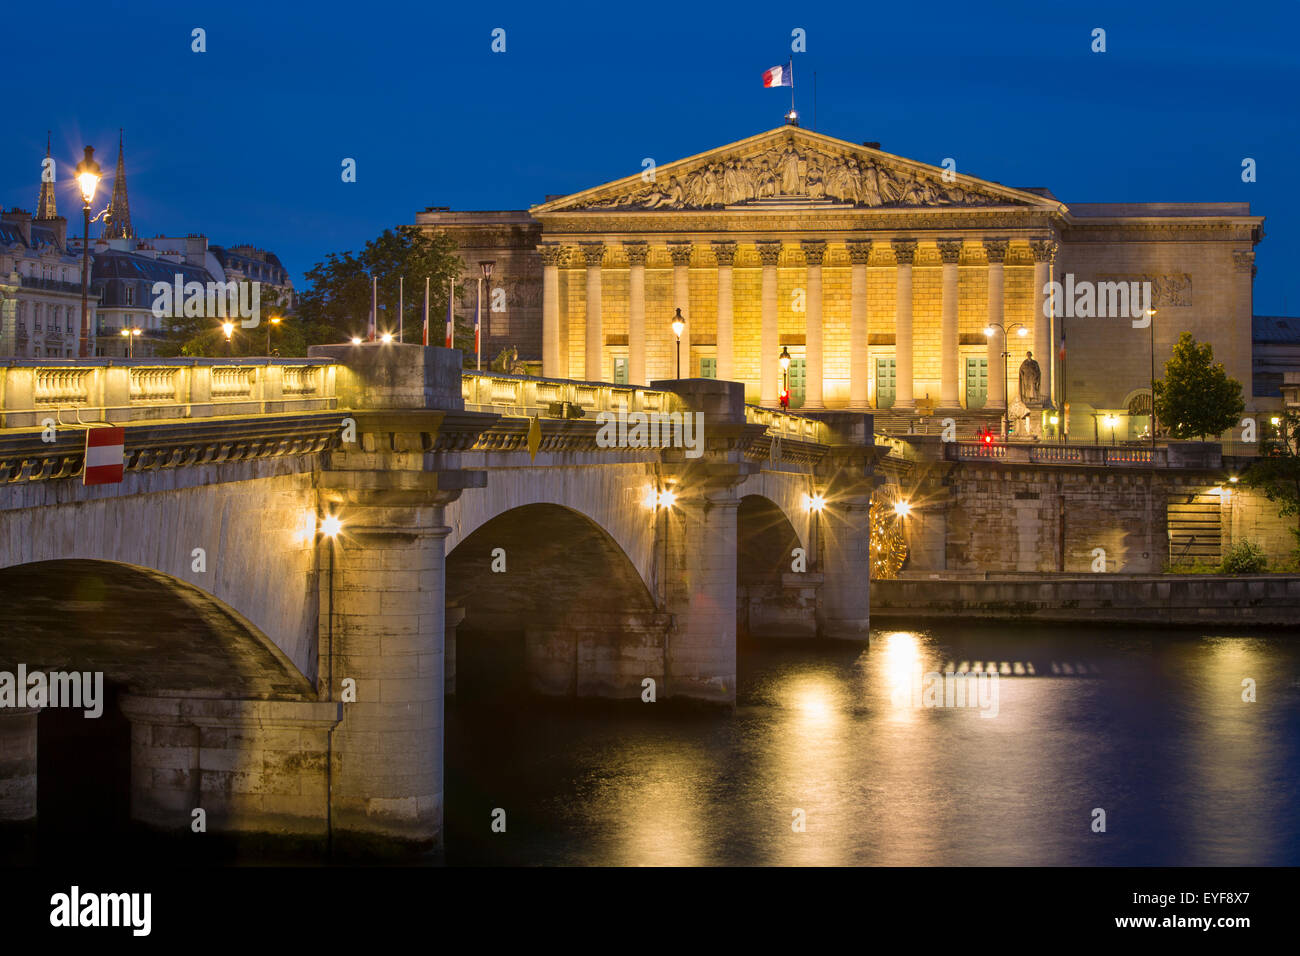 Twilight view over River Seine, Pont de la Concorde and Assemblee Nationale, Paris, France - Stock Image